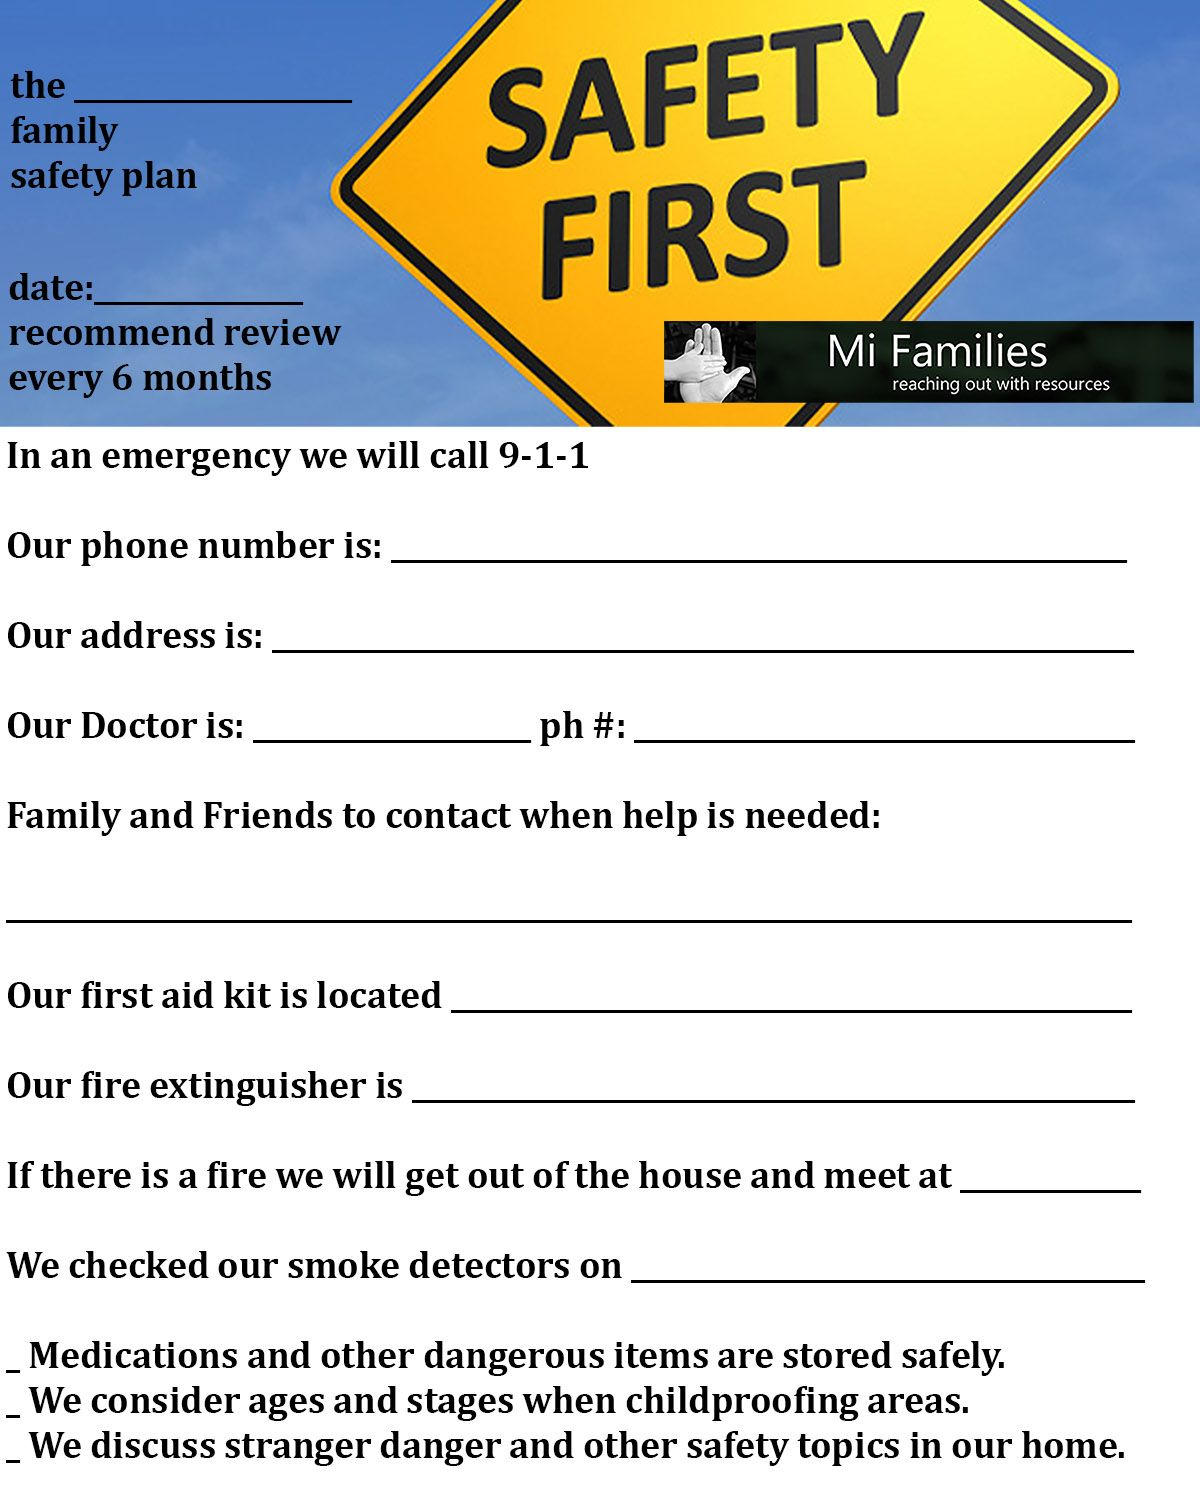 printable worksheet for families click image for healthy safety article w links and. Black Bedroom Furniture Sets. Home Design Ideas